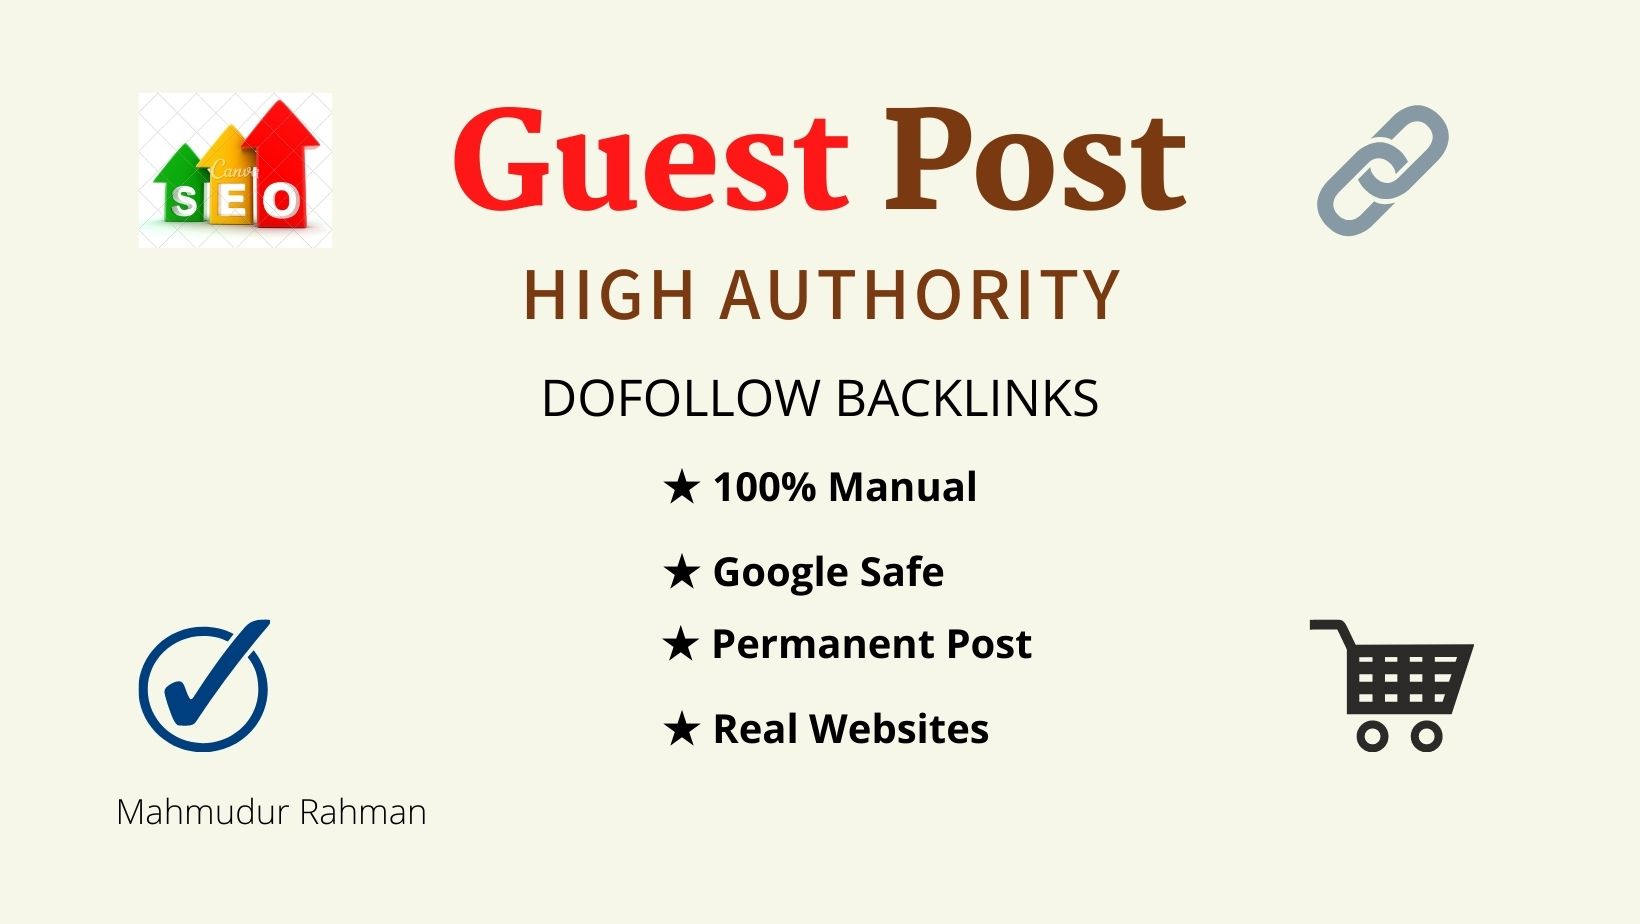 I will provide guest posts for Business,  Tech,  and Dofollow backlinks